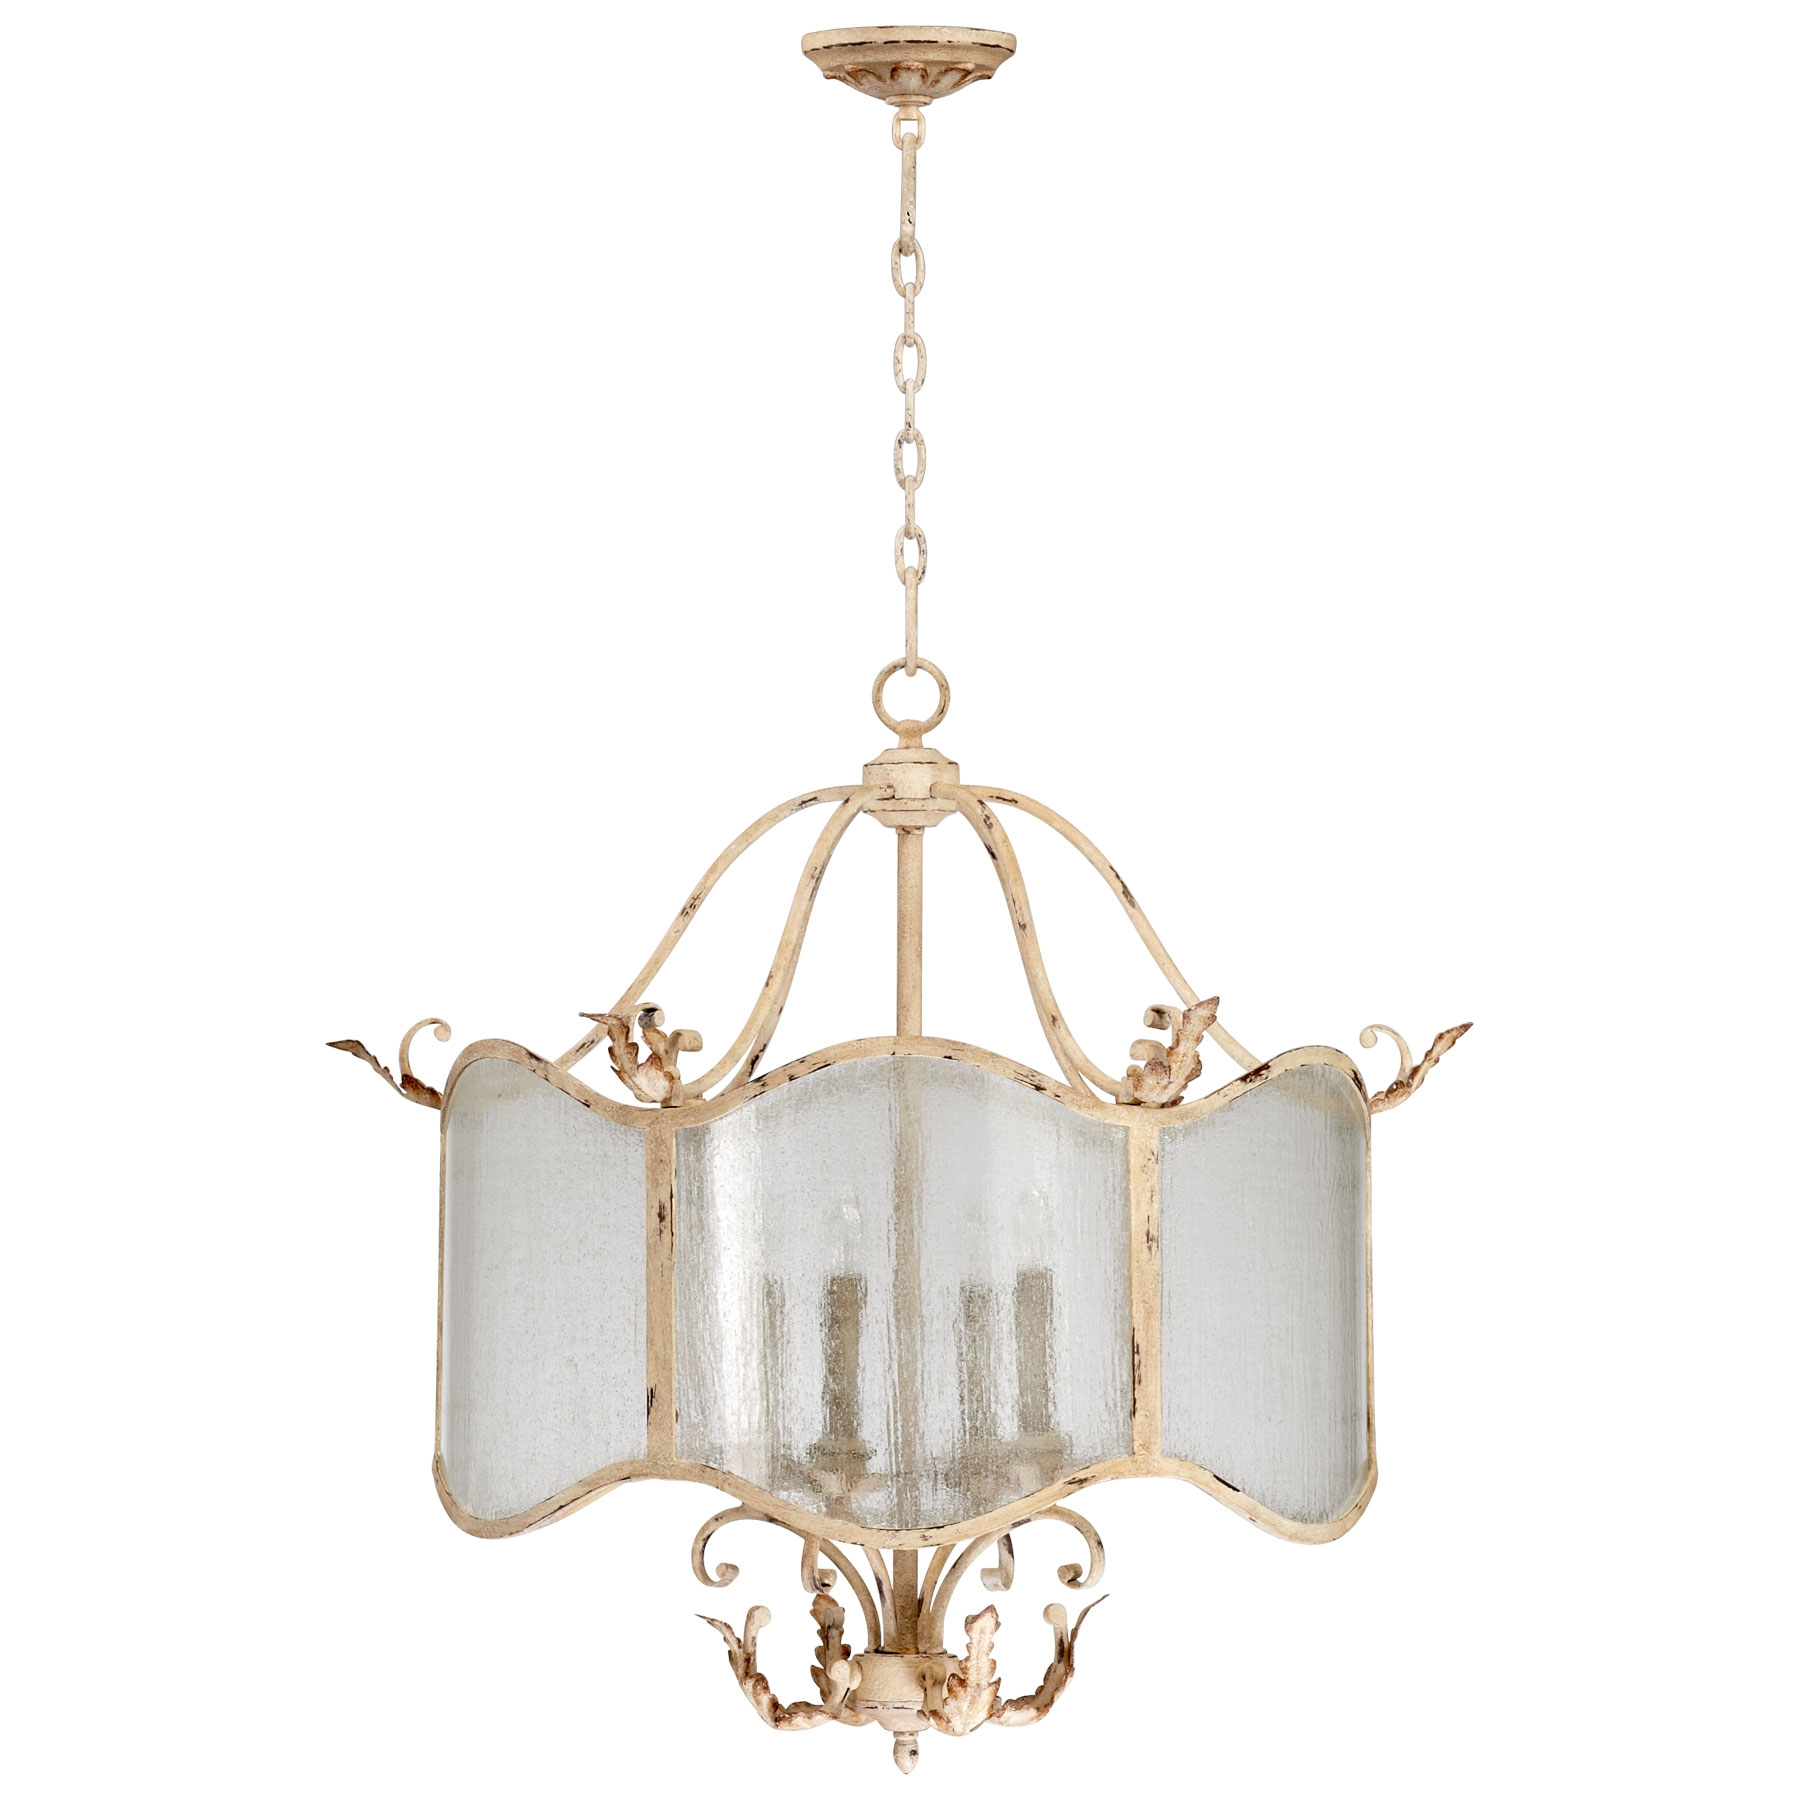 Vintage French Country Chandelier With Glass Lamp Shades And Iron Within French Antique Chandeliers (Image 15 of 15)